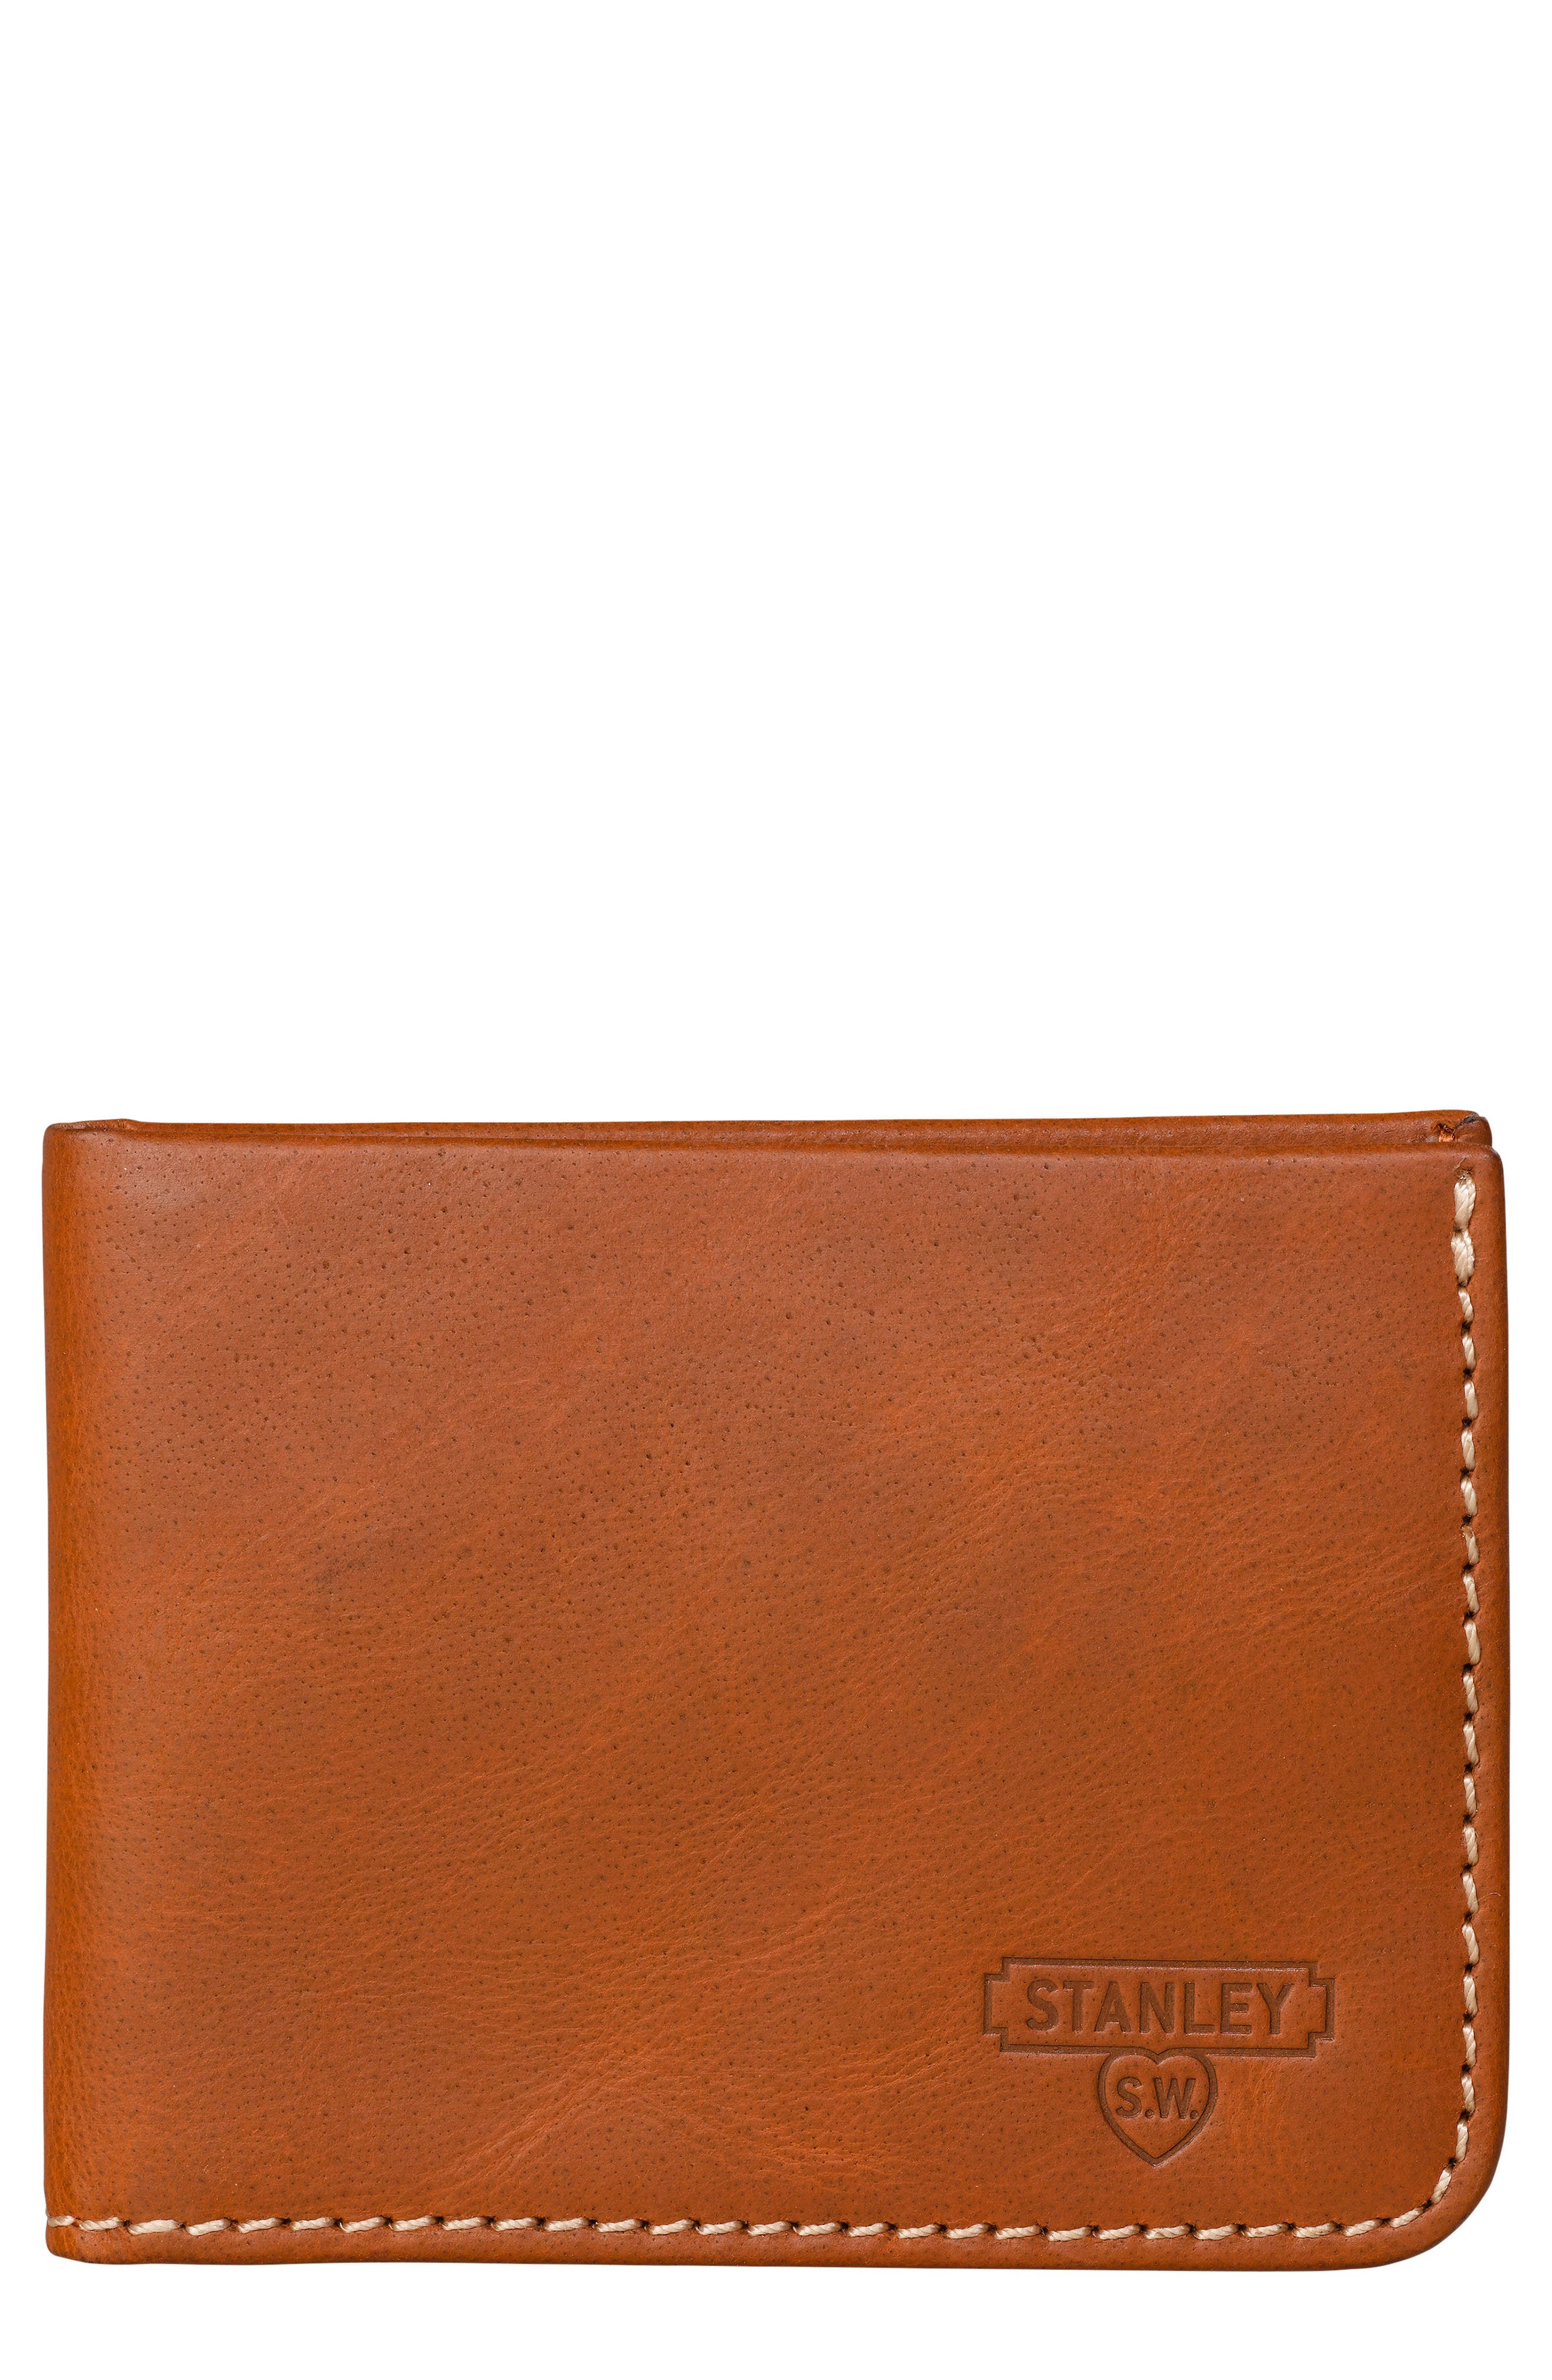 Wild & Wolf Stanley Leather Wallet with Money Clip